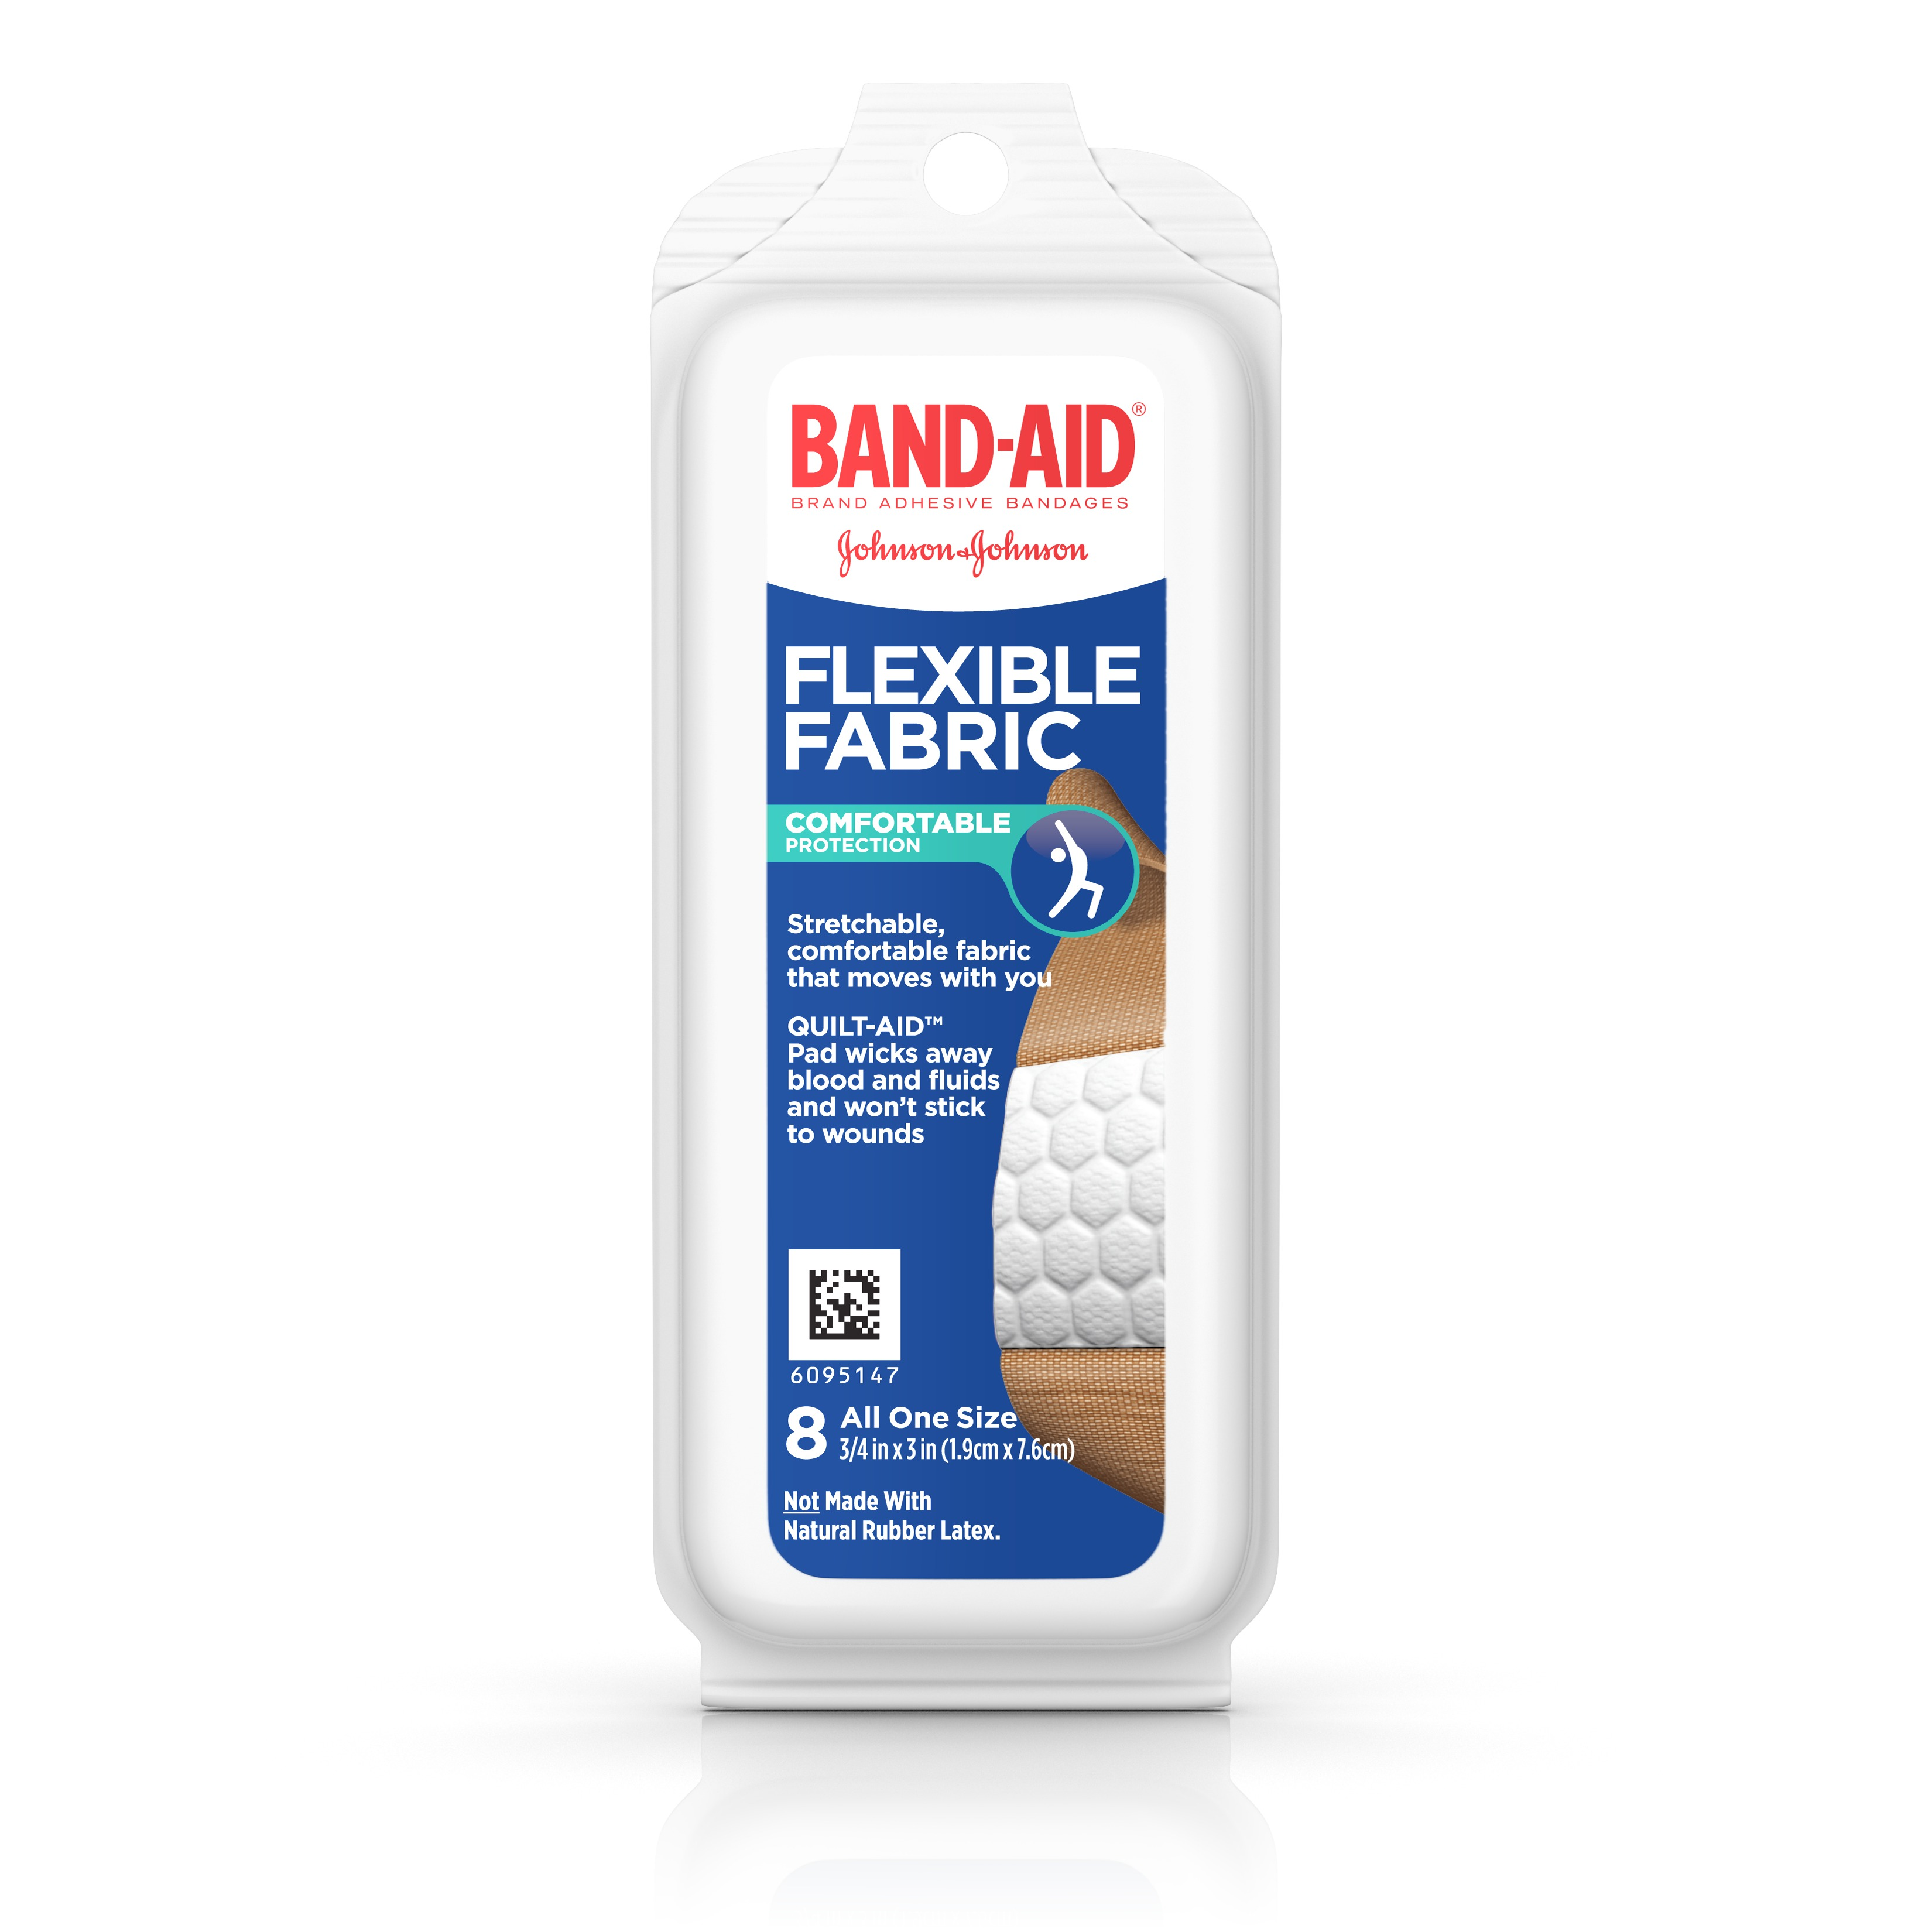 Band-Aid Brand Flexible Fabric Adhesive Bandages, Travel Pack, 8 ct